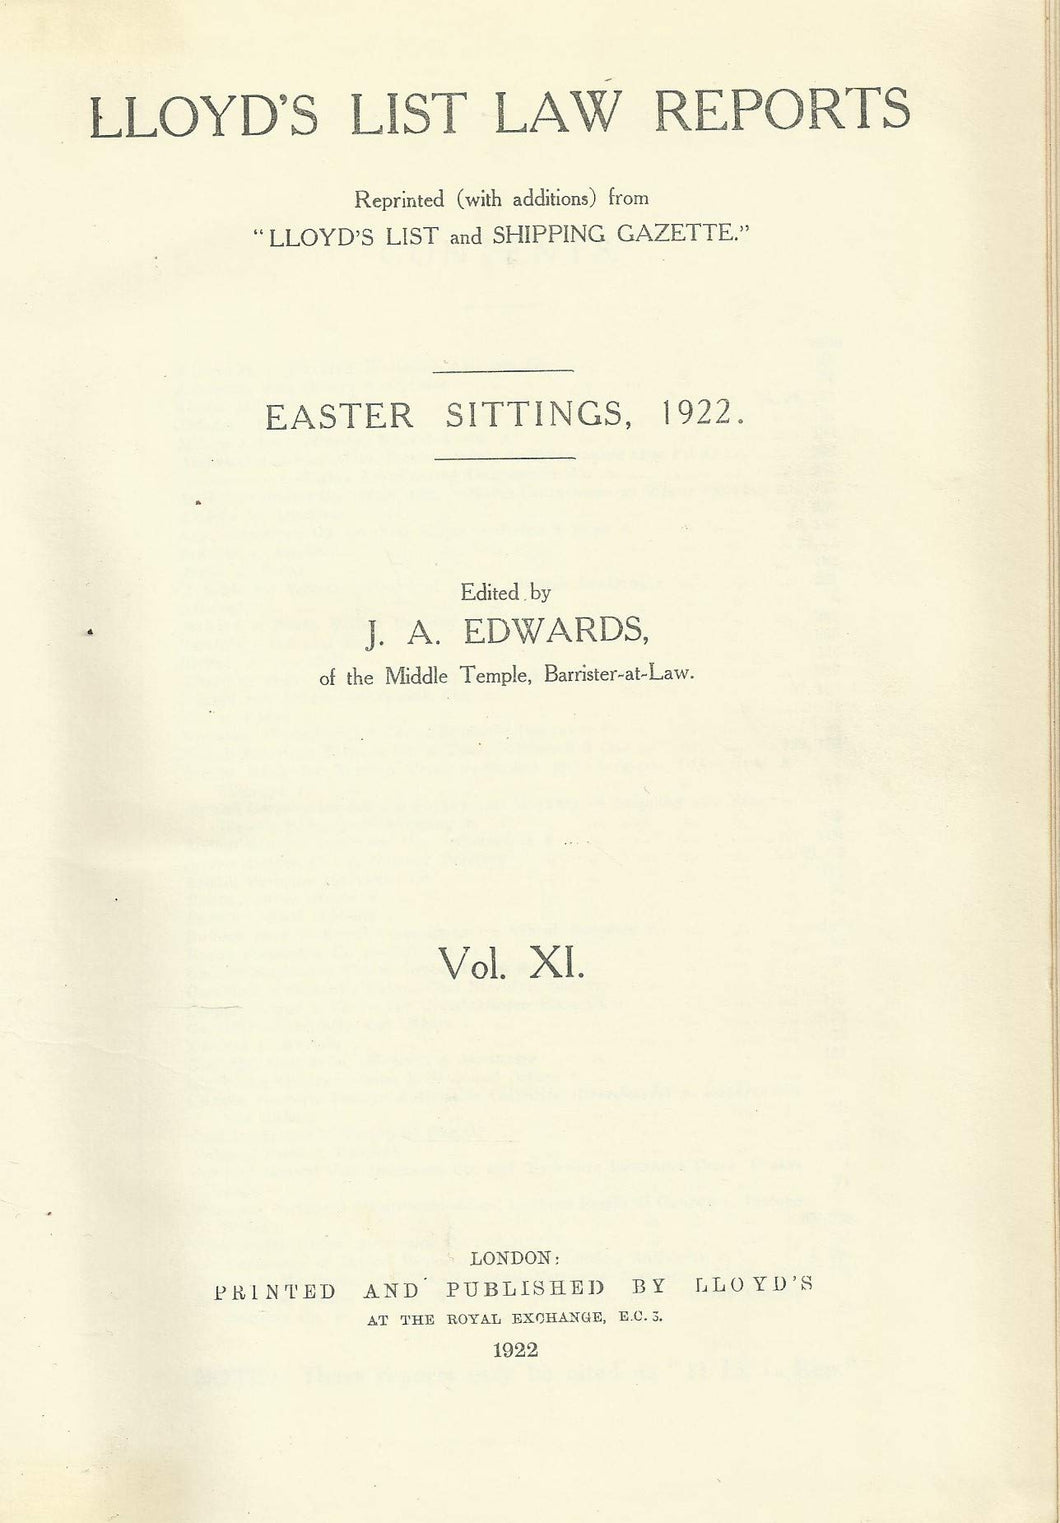 Lloyd's List Law Reports - Volume XI (Volume 11), Easter Sittings, 1922